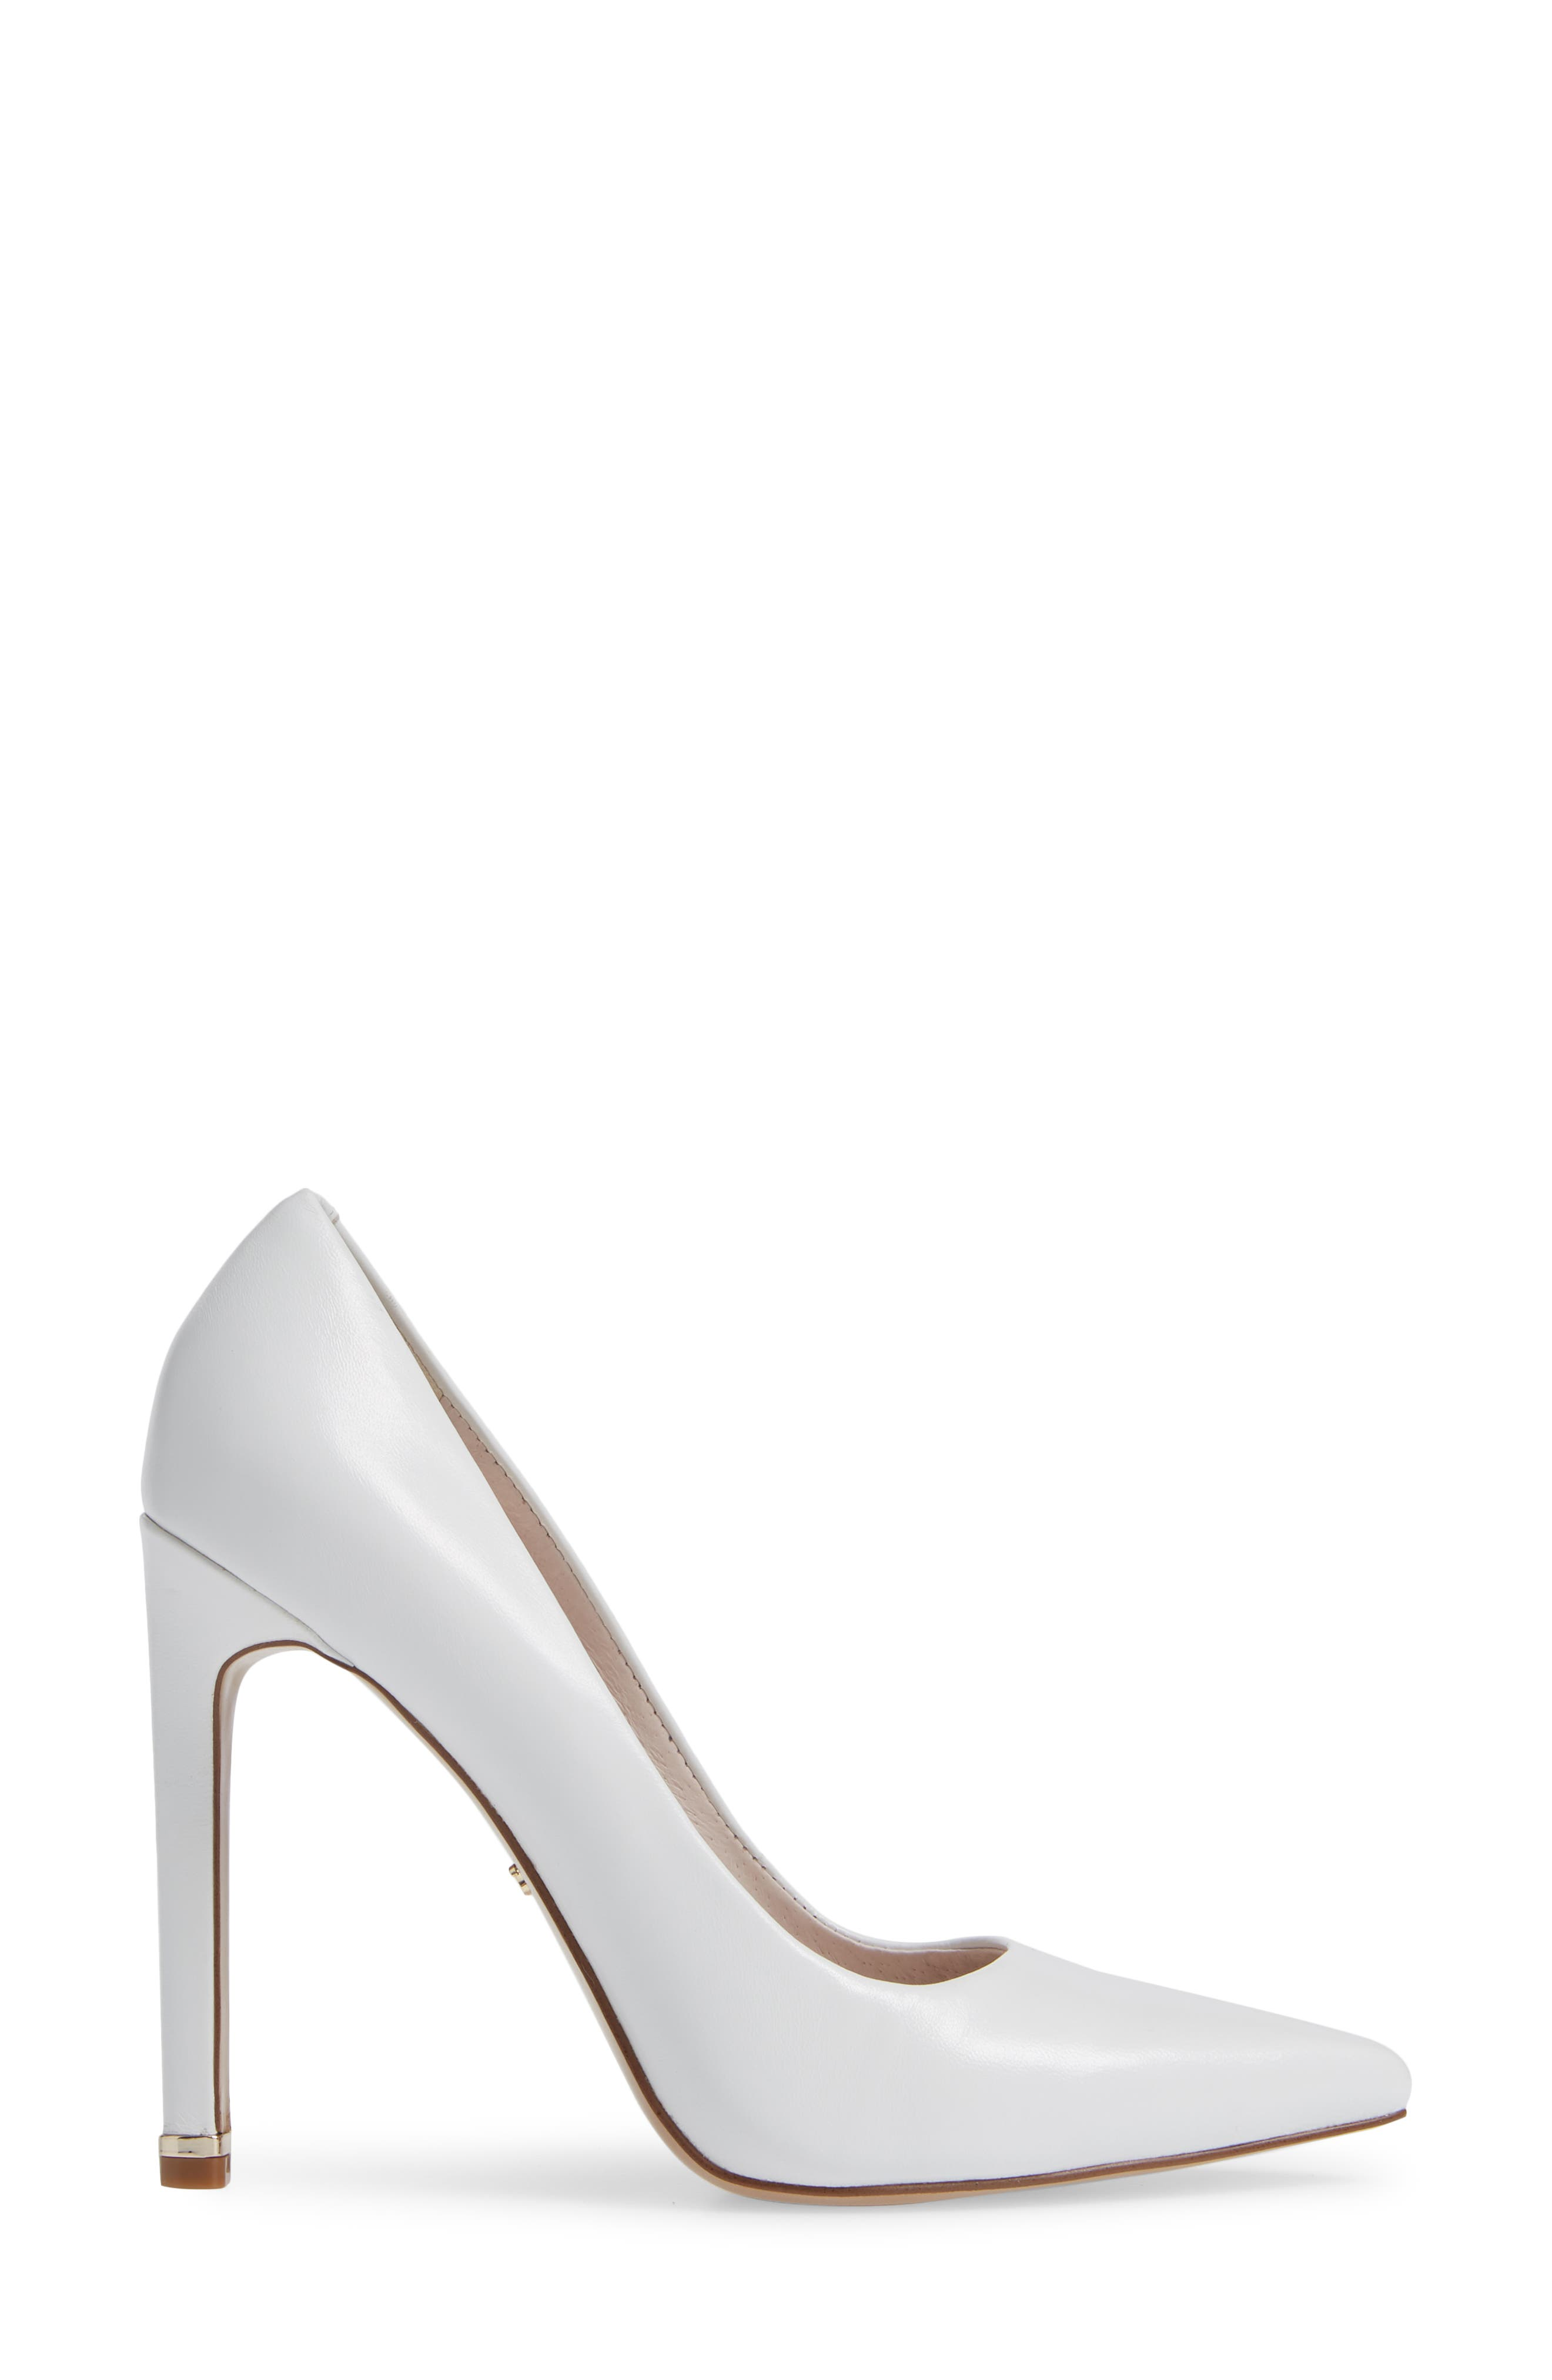 Riley 110 Pointy Toe Pump,                             Alternate thumbnail 3, color,                             WHITE LEATHER